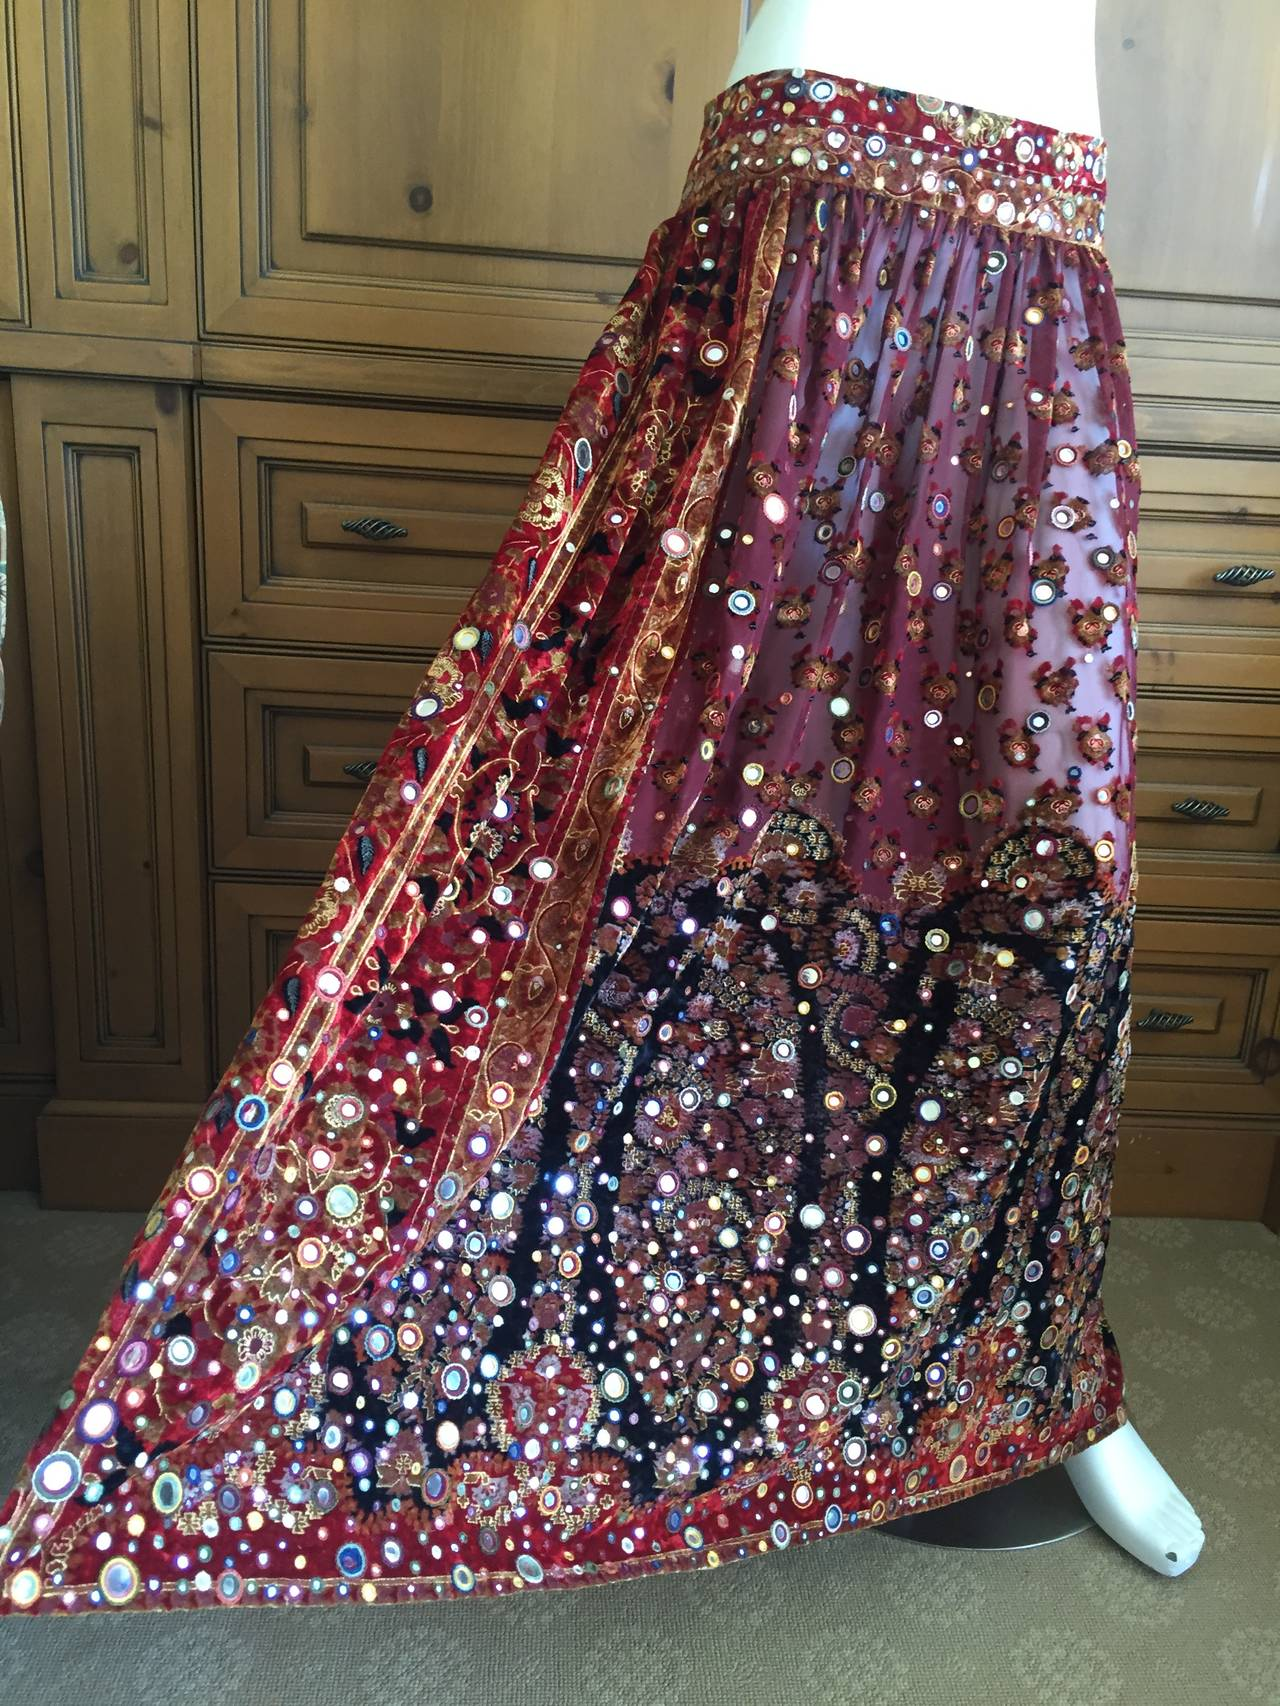 Oscar de la Renta Vintage Boho Gypsy Skirt with Mirrors 7